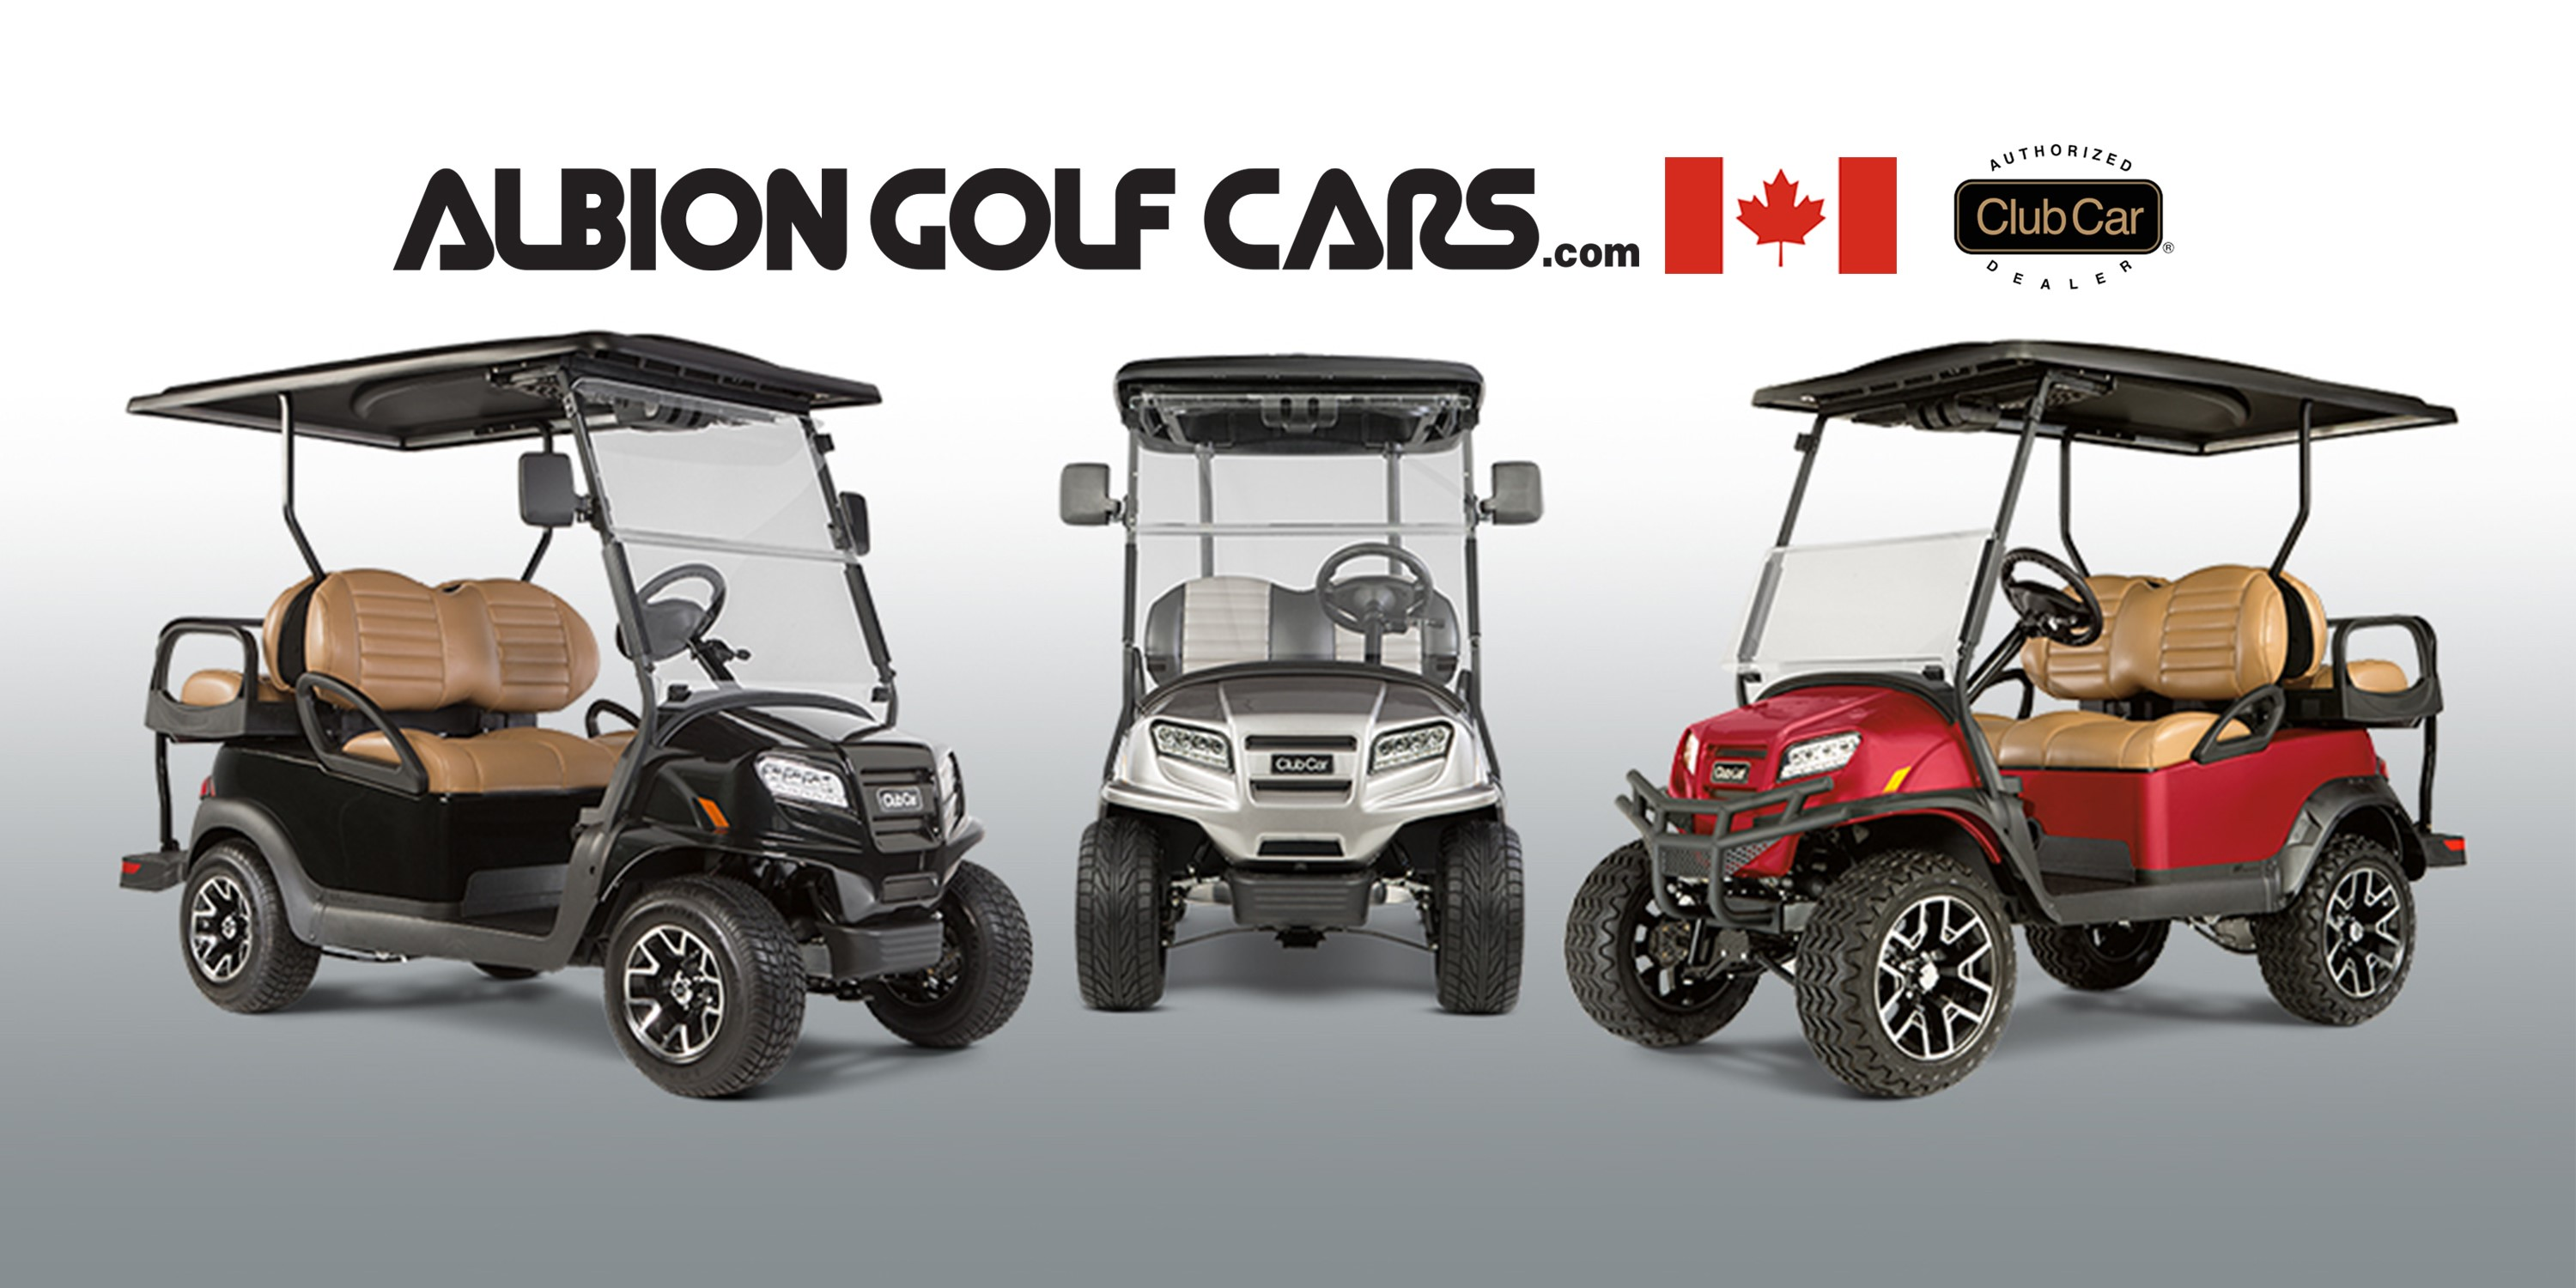 Albiongolfcars